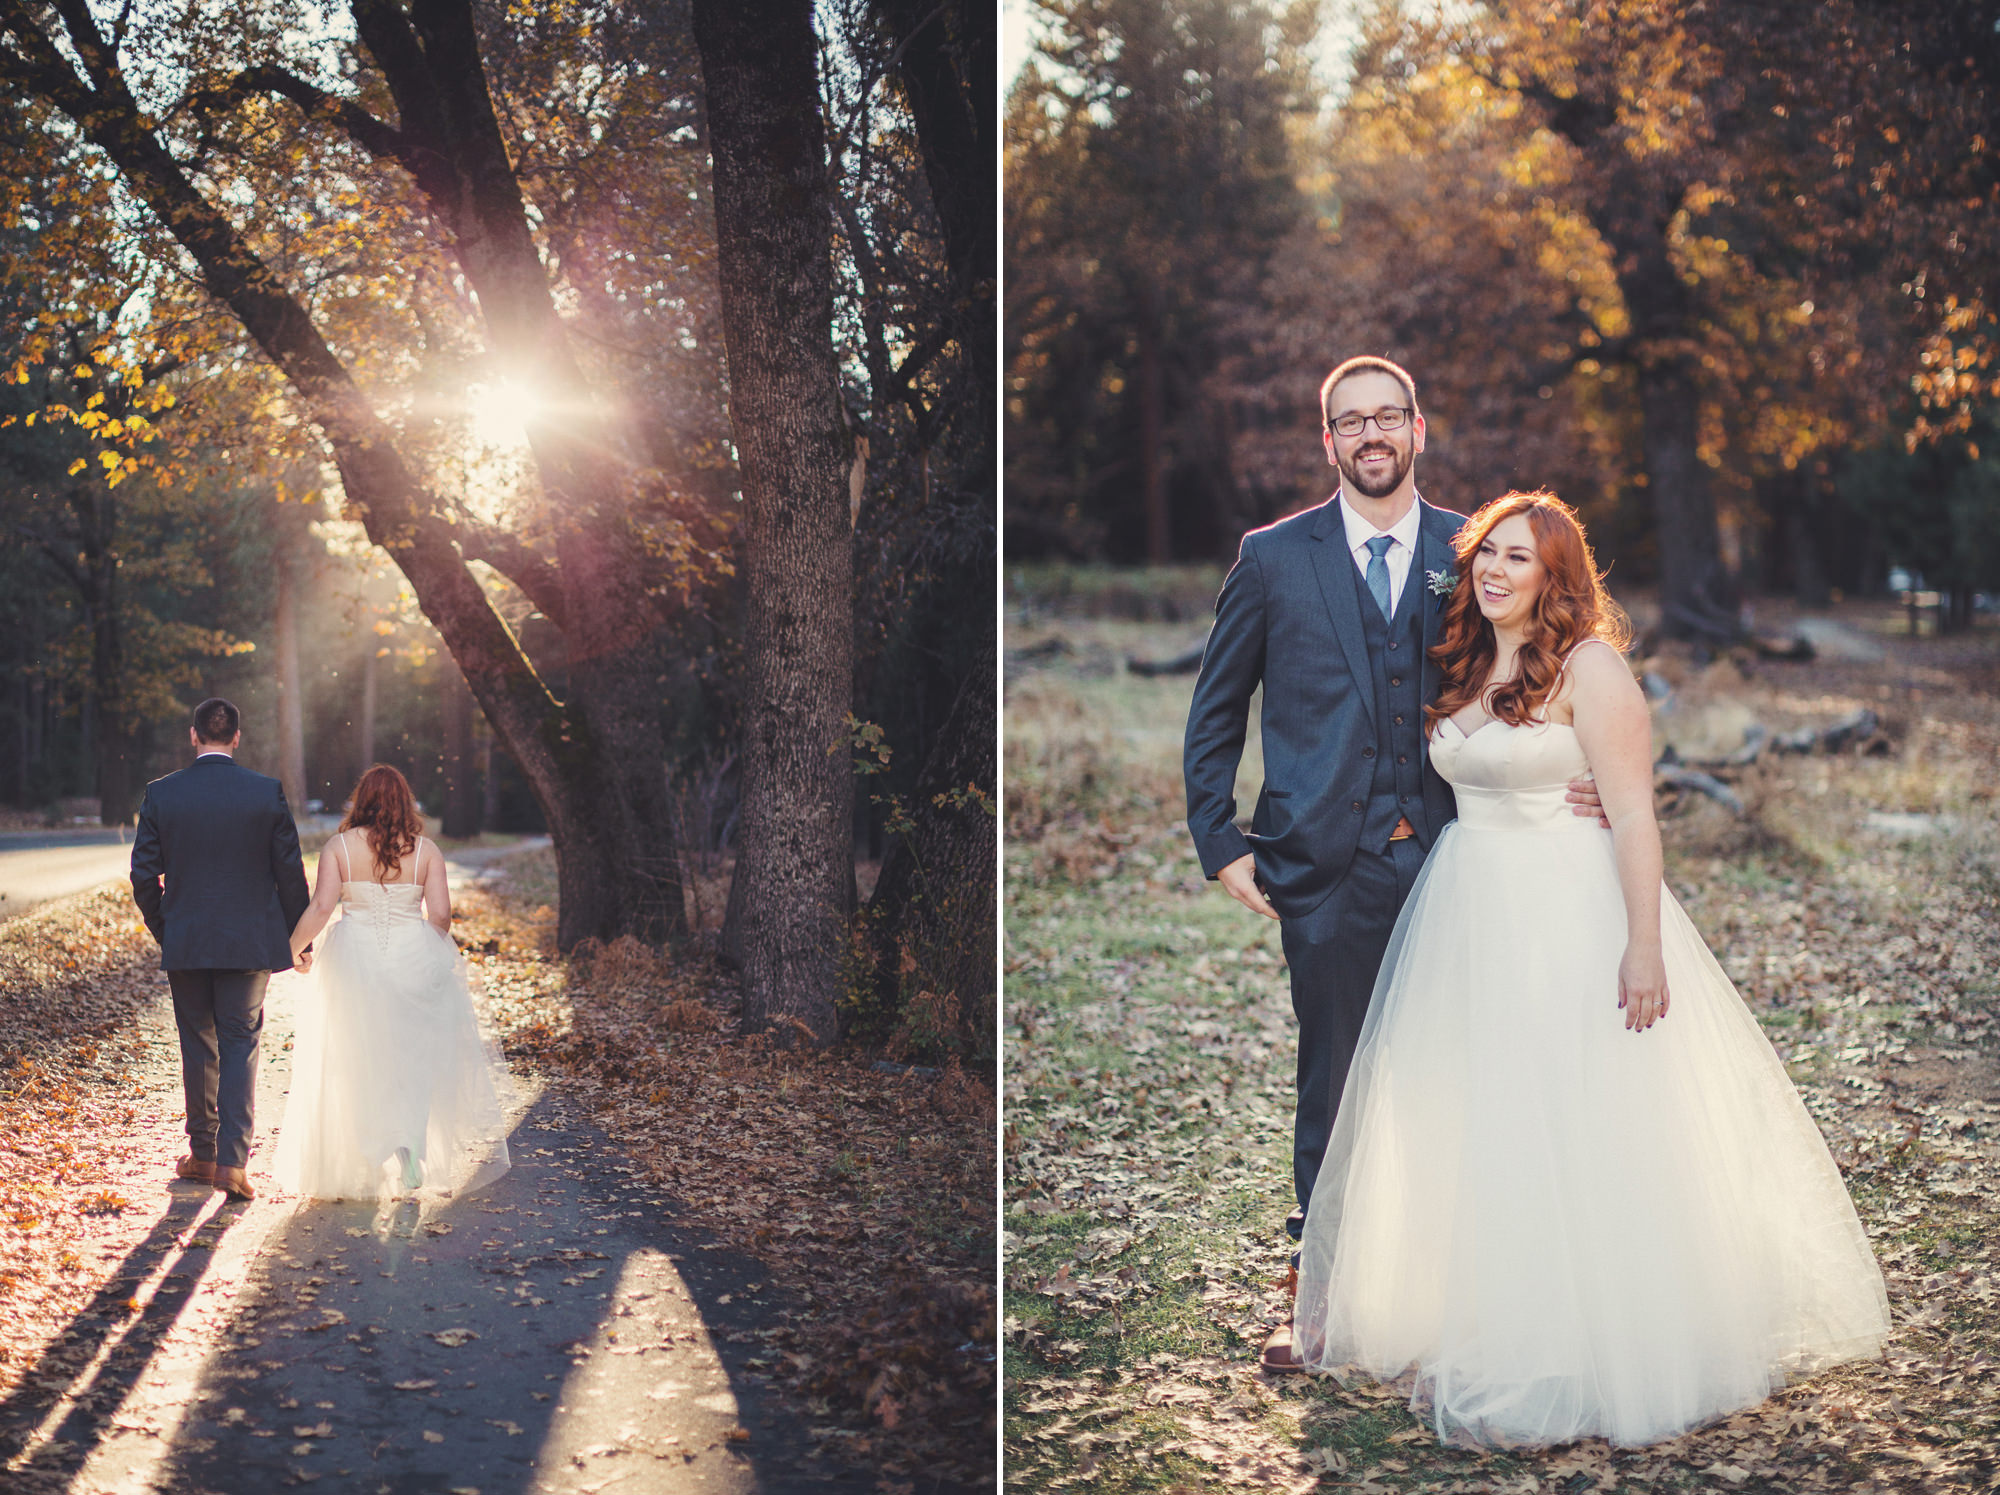 Yosemite wedding ©Anne-Claire Brun 96